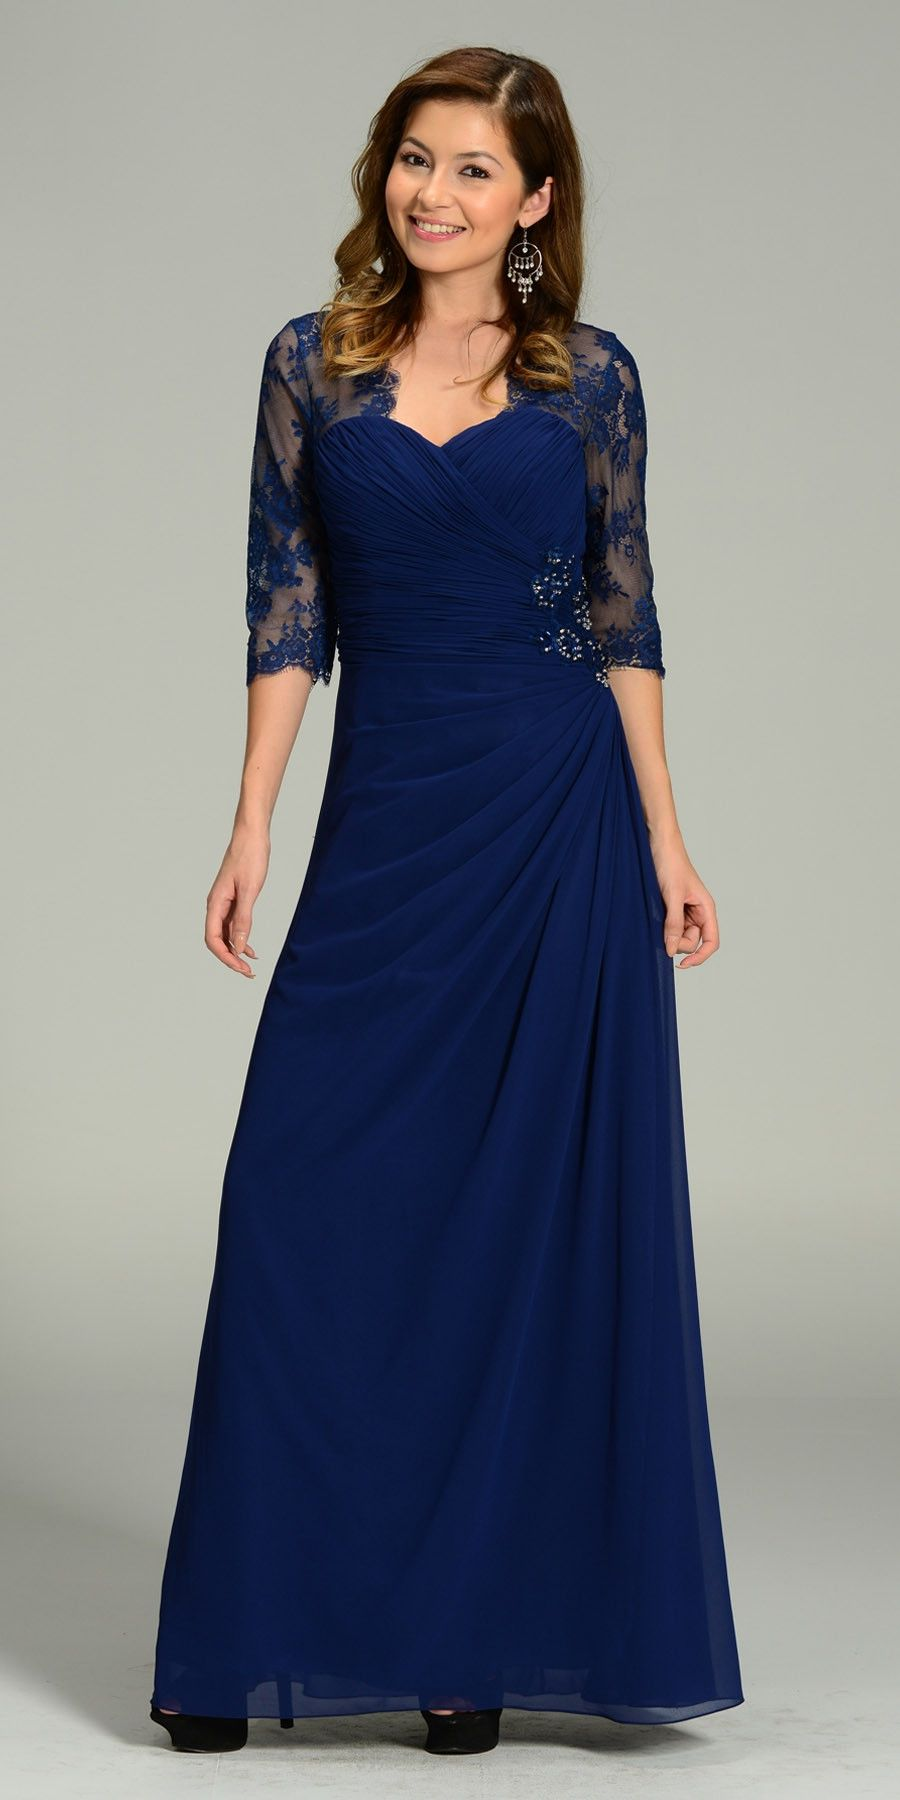 Long chiffonlace dress navy blue mid length lace sleeves mid